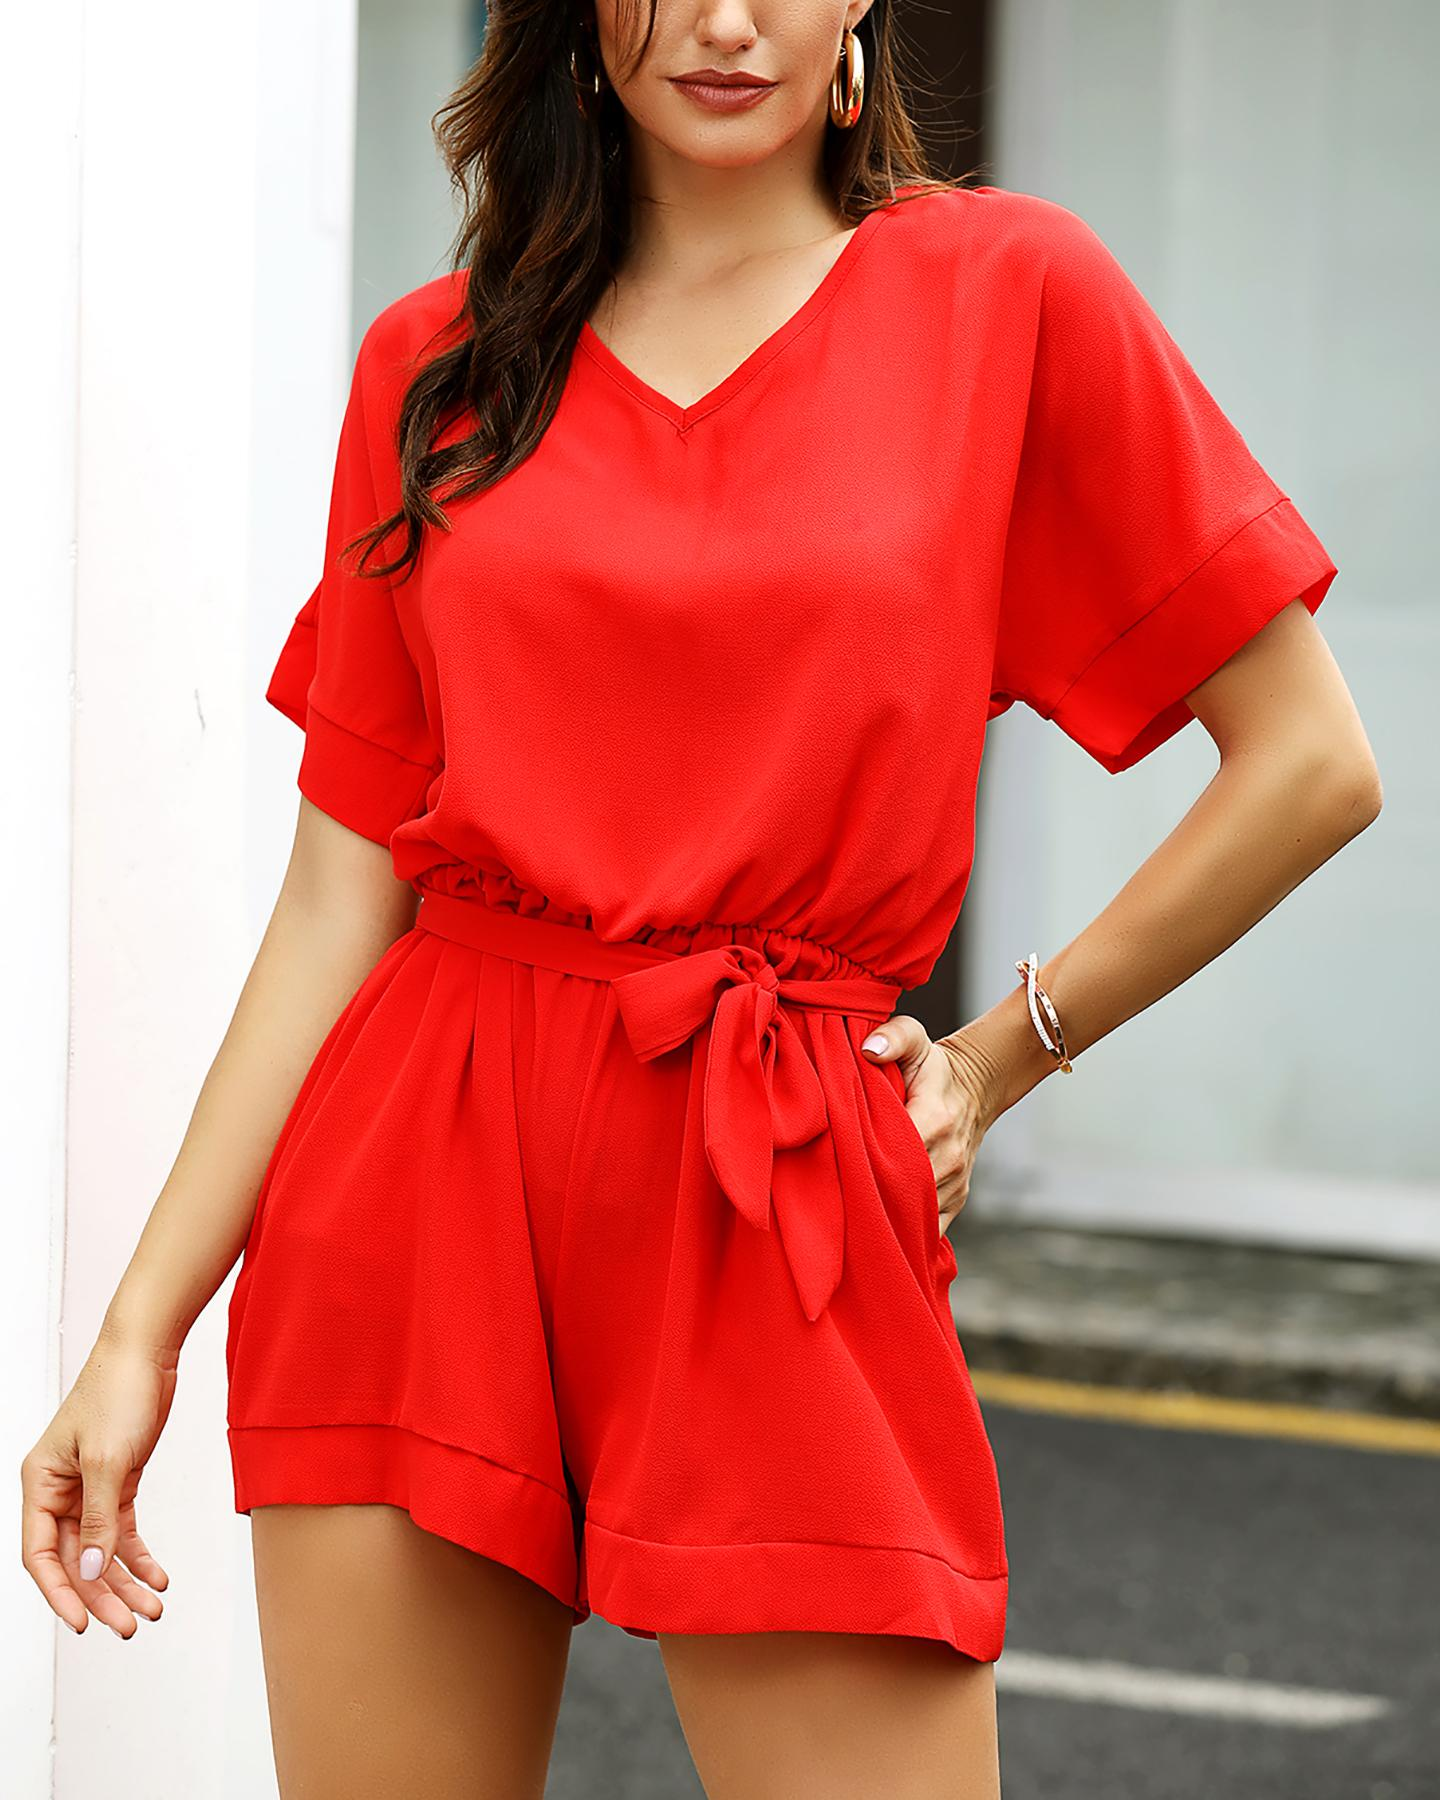 chicme / V-Neck Short Sleeve Casual Romper